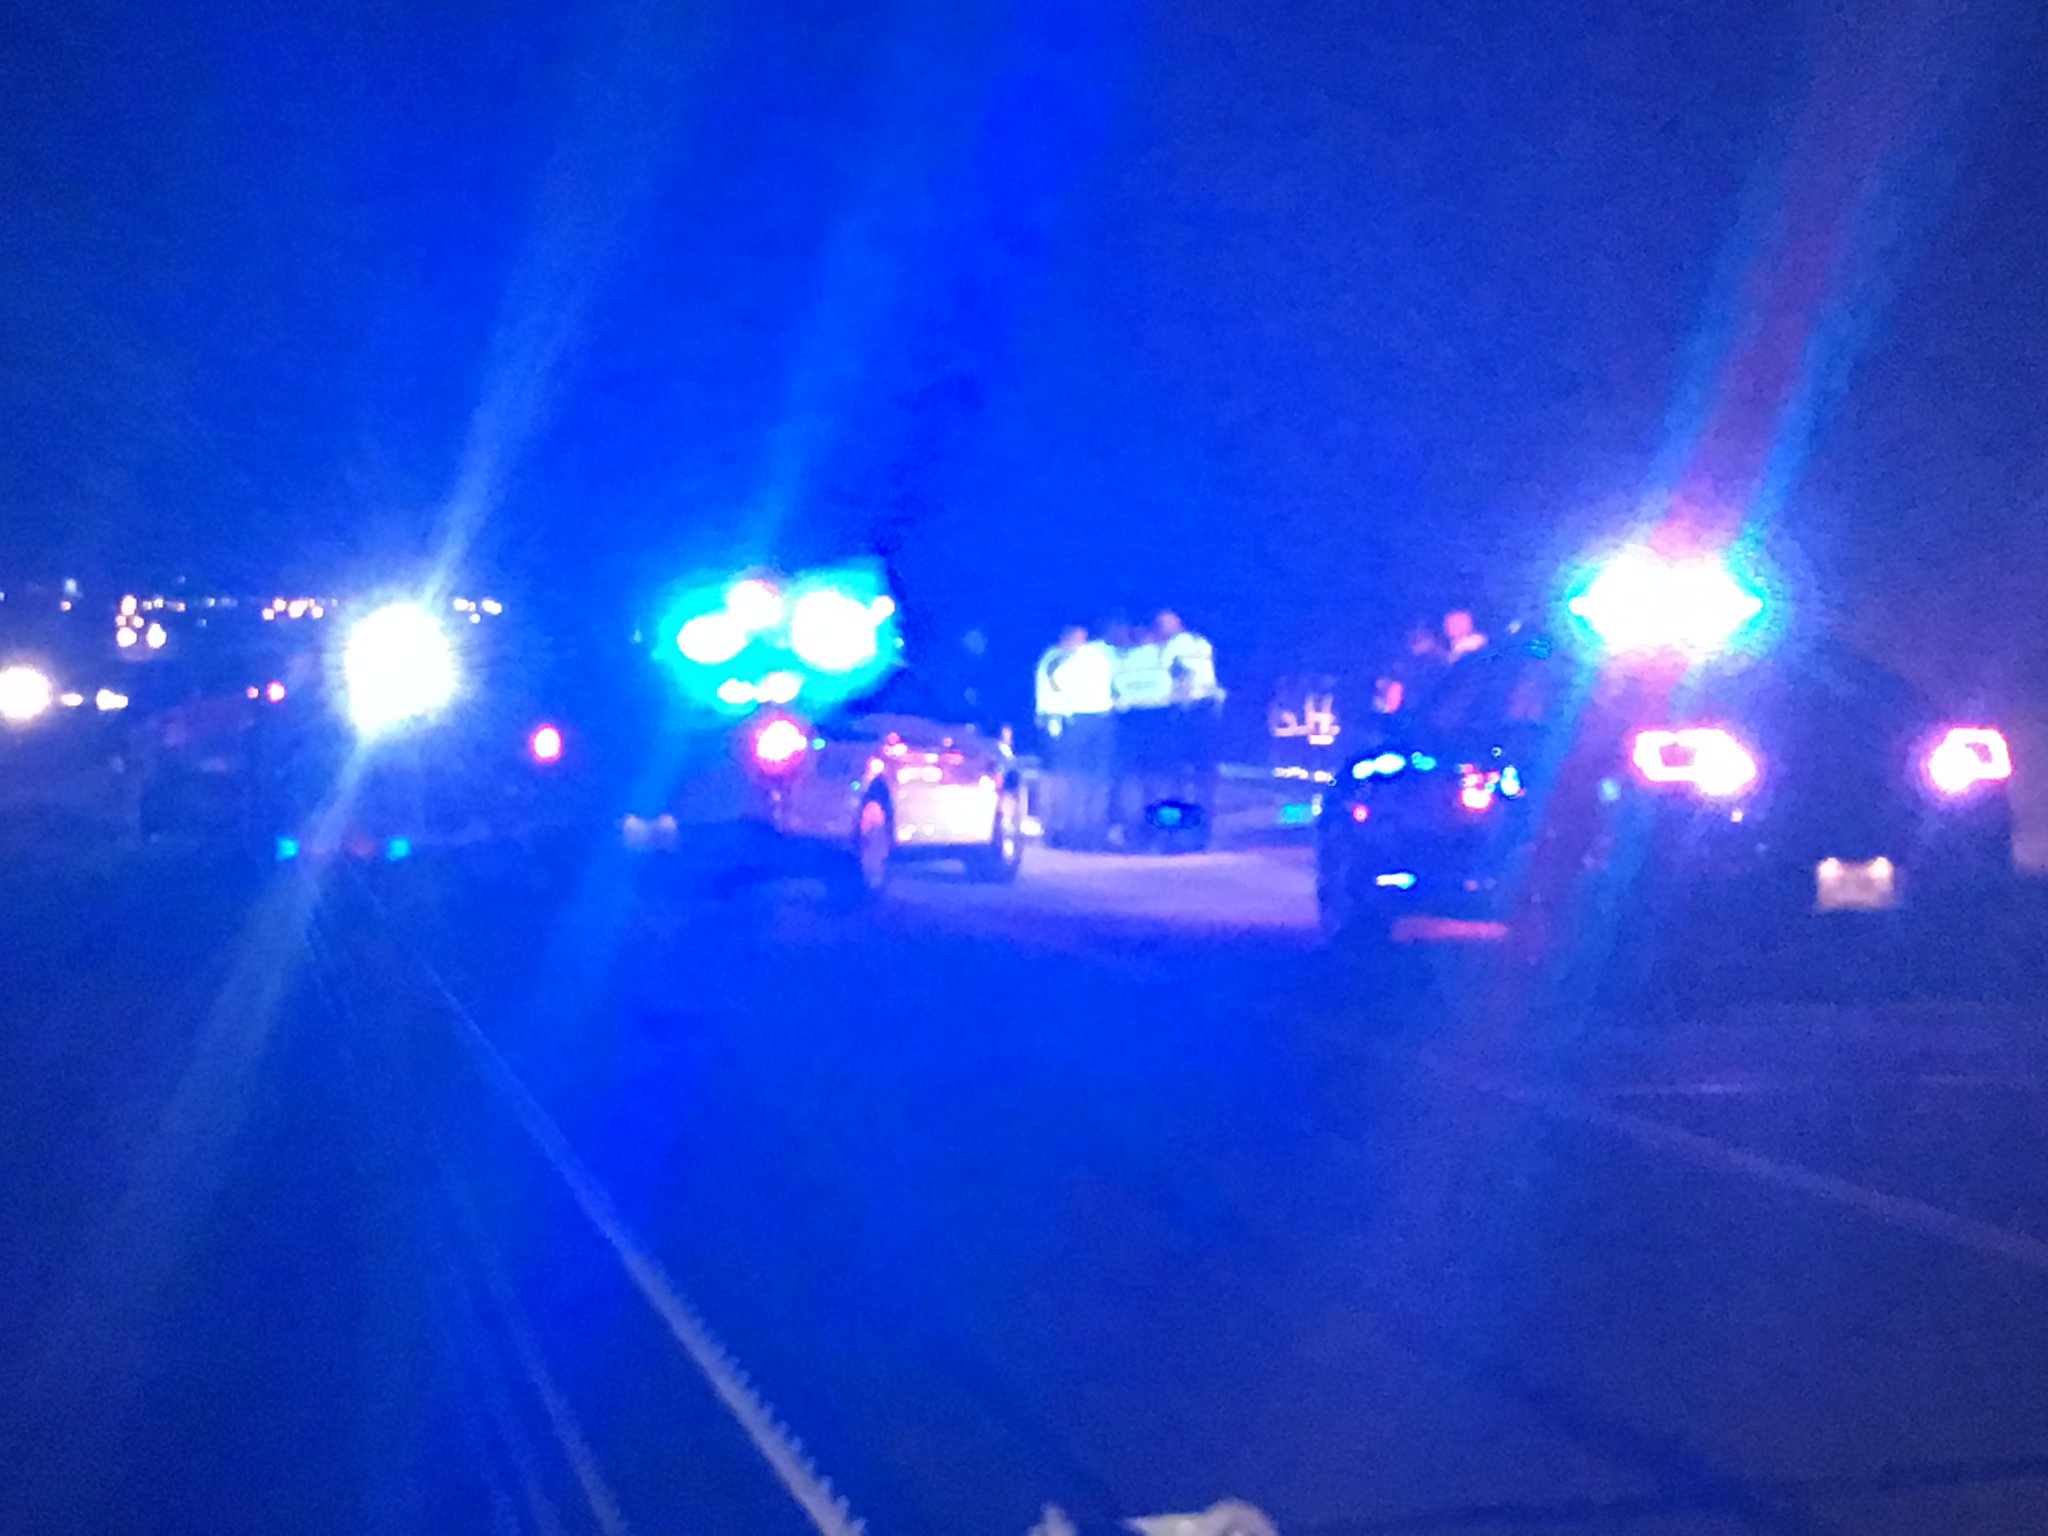 I-675 SB open after two killed in wrong-way crash near Wilmington Pike (WKEF/WRGT)